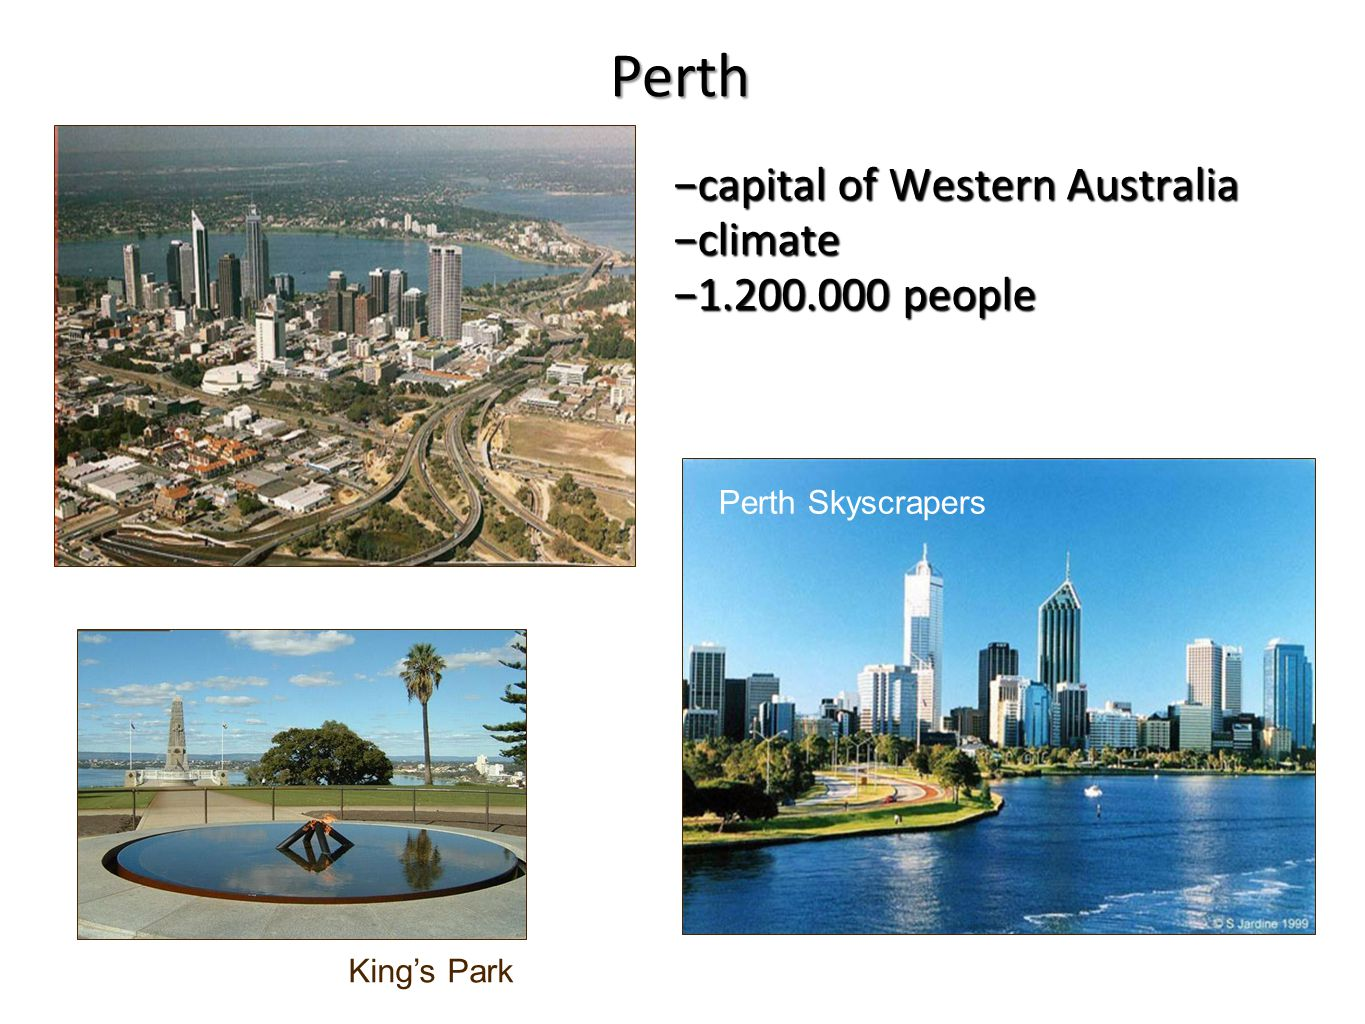 −capital of Western Australia −climate −1.200.000 people King's Park Perth Skyscrapers Perth